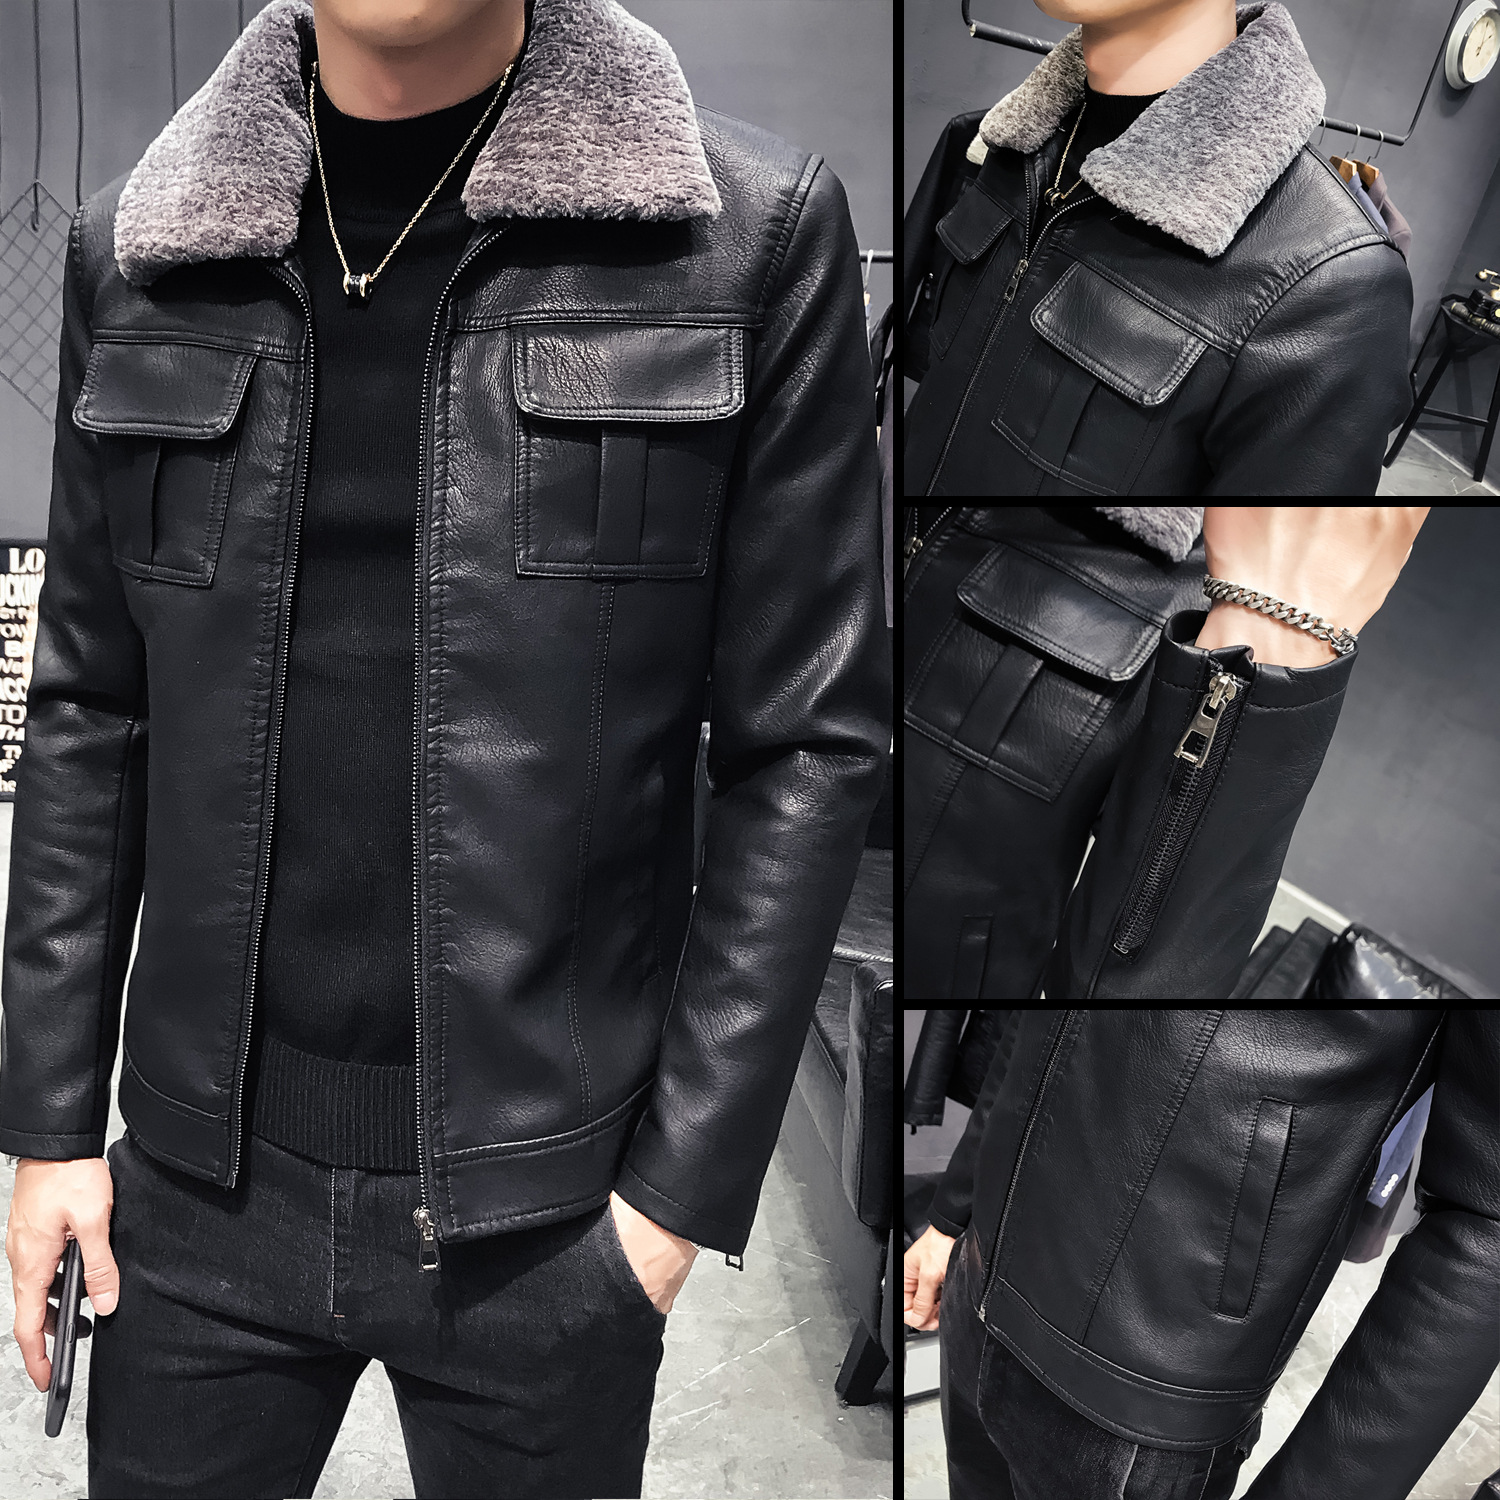 2019 Autumn And Winter New Style Men Thick Warm Washing Leather Coat Detachable Collar Coat Youth Slim Fit PU Leather Coat